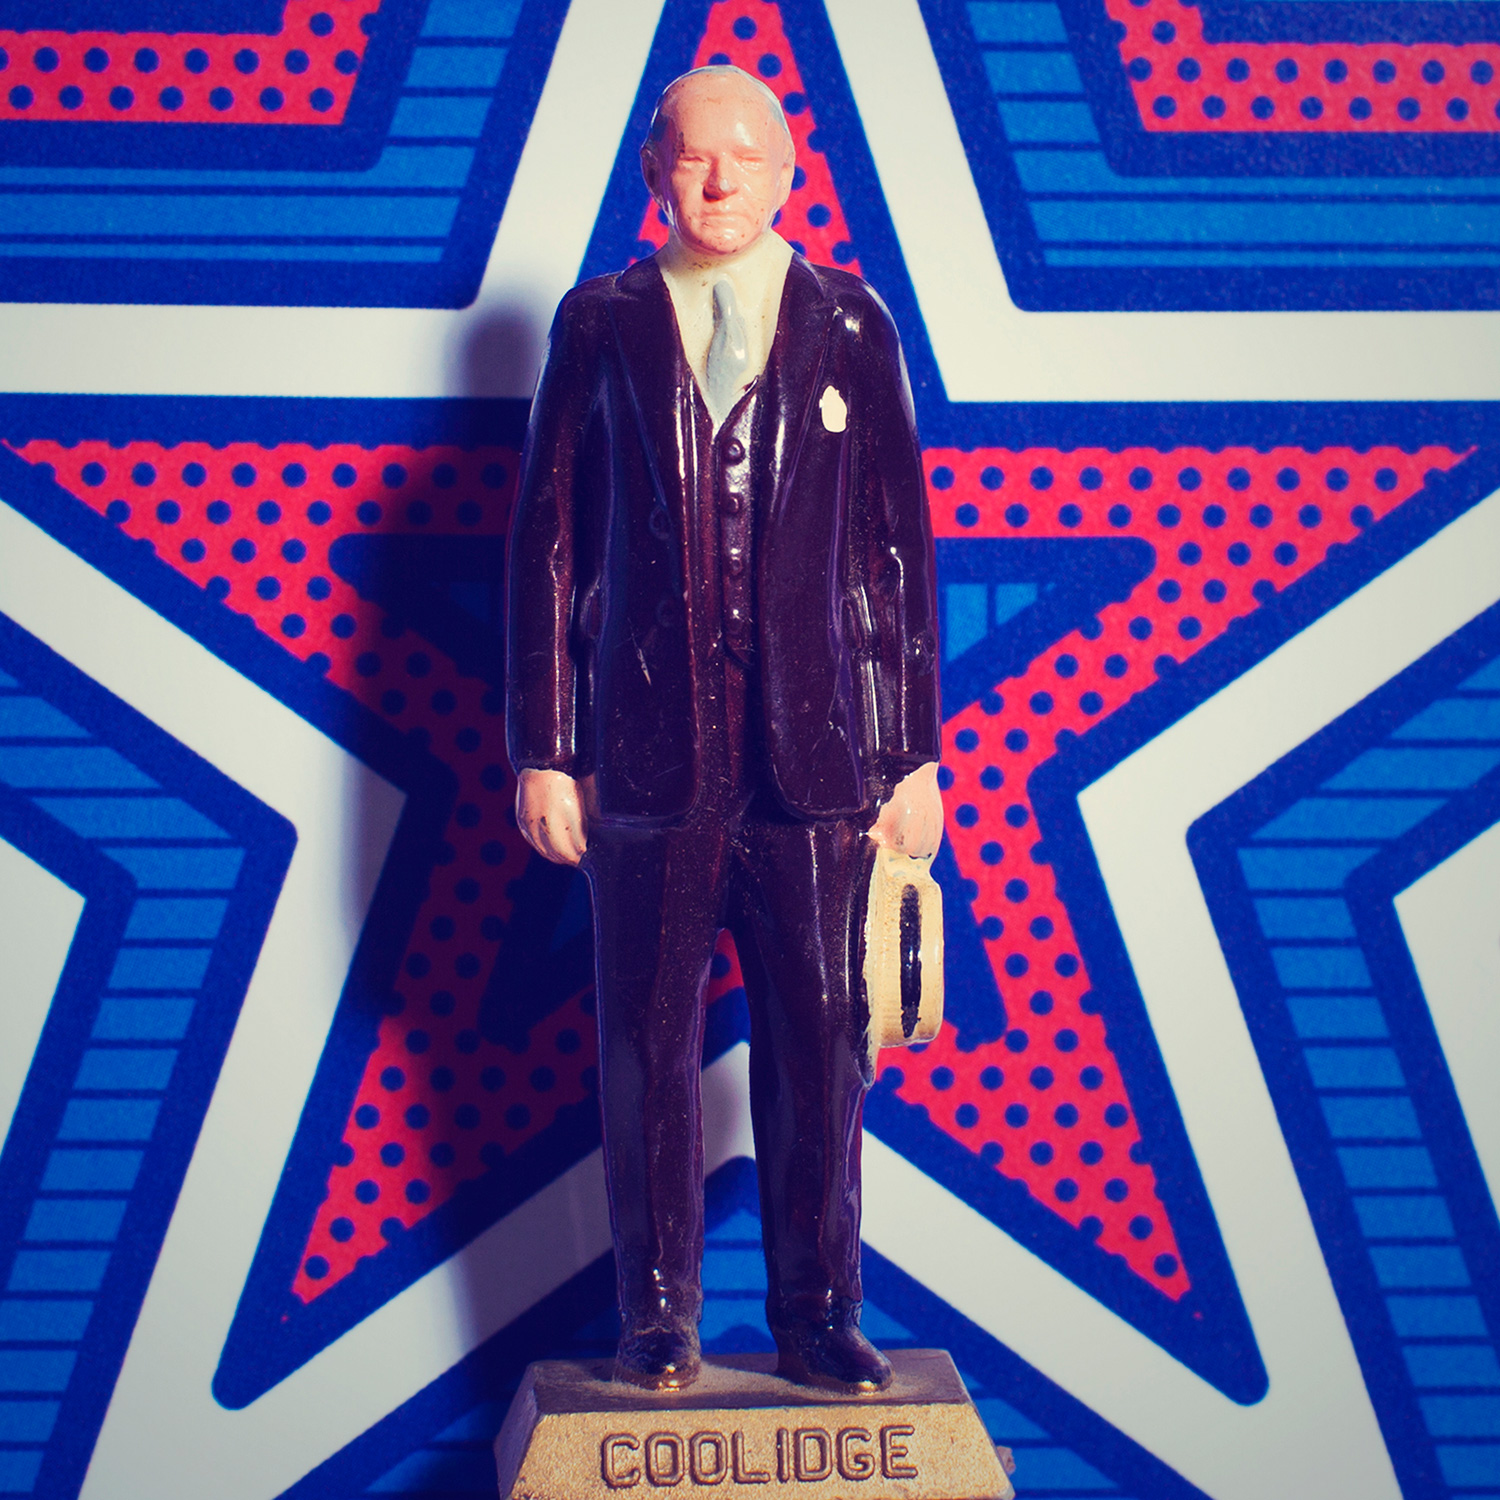 Calvin Coolidge: A tale of two Coolidges